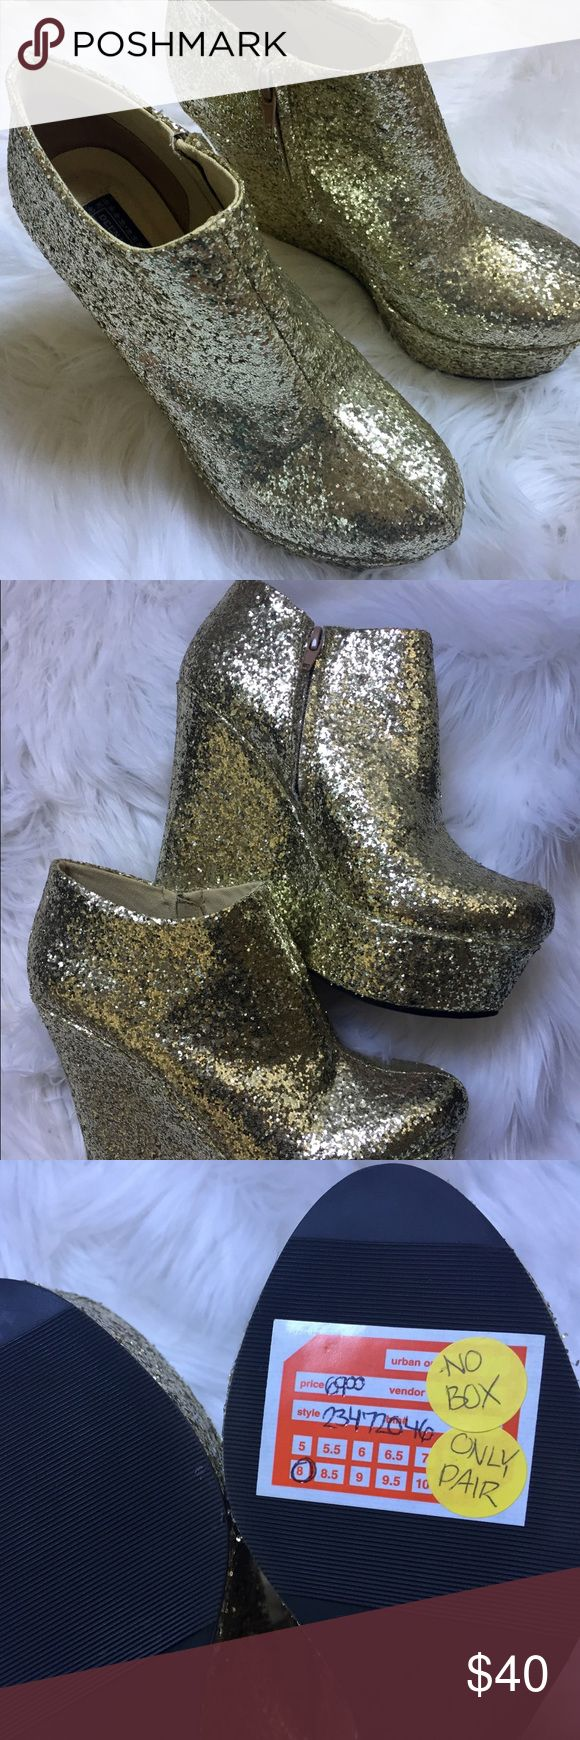 UO Deena & Ozzy Gold Glitter Platform Booties Deena & Ozzy Gold Glitter Platform Booties from Urban Outfitters. Size 8. Never worn. Bought without box. Deena & Ozzy Shoes Ankle Boots & Booties